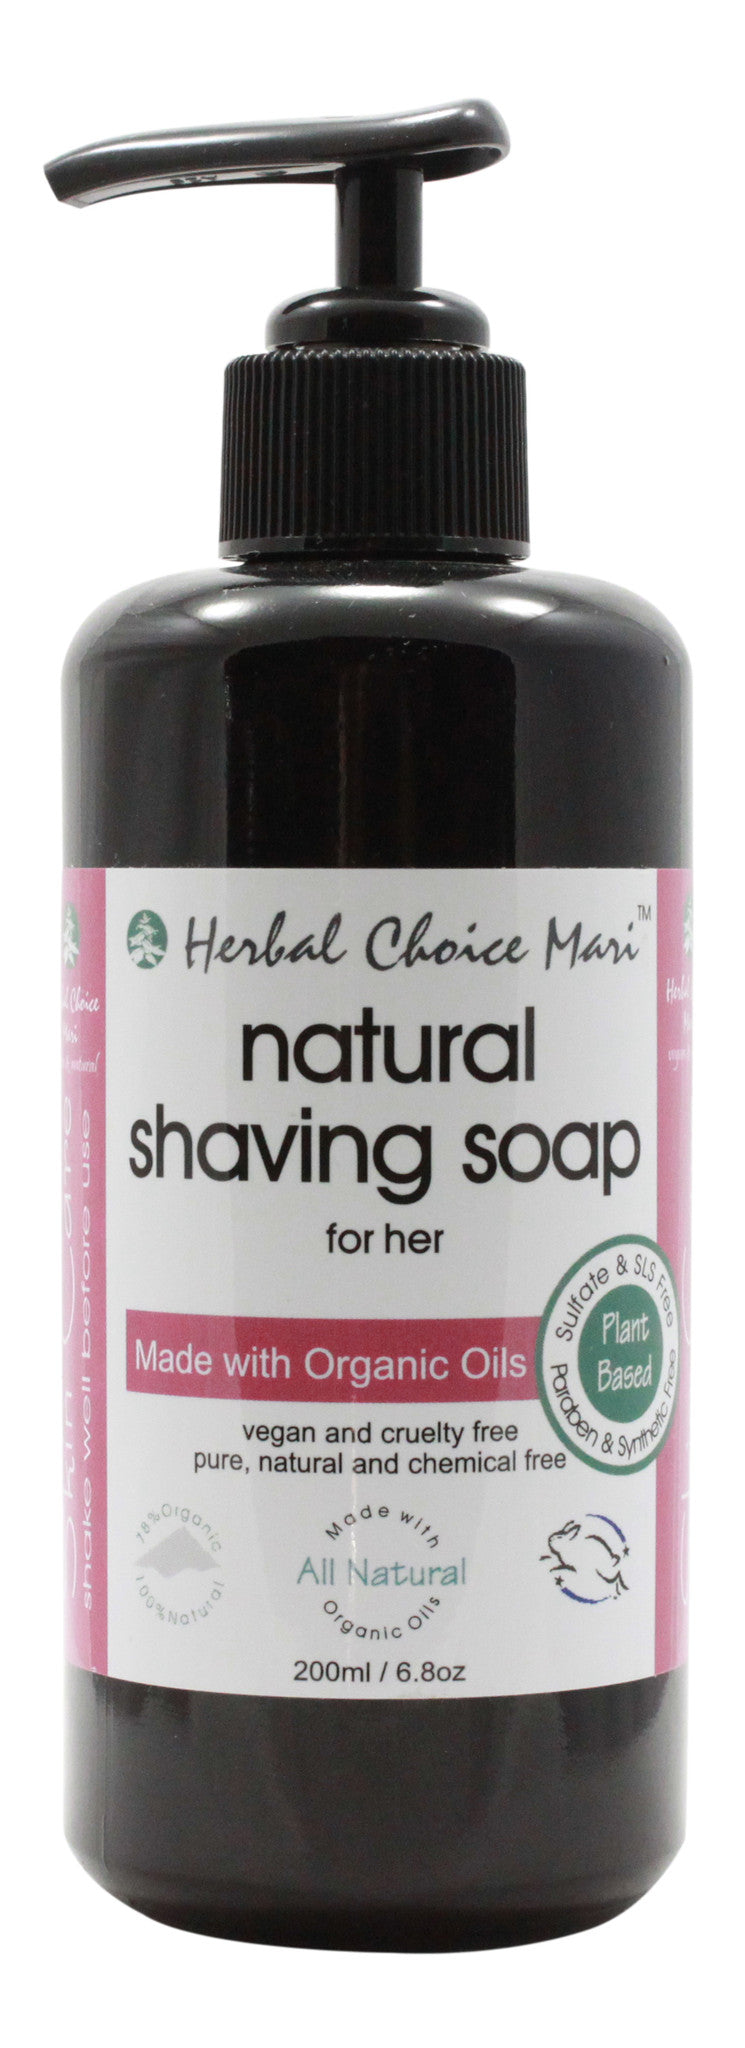 Natural Shaving Soap for Her - 6.8 oz Bottle - Front